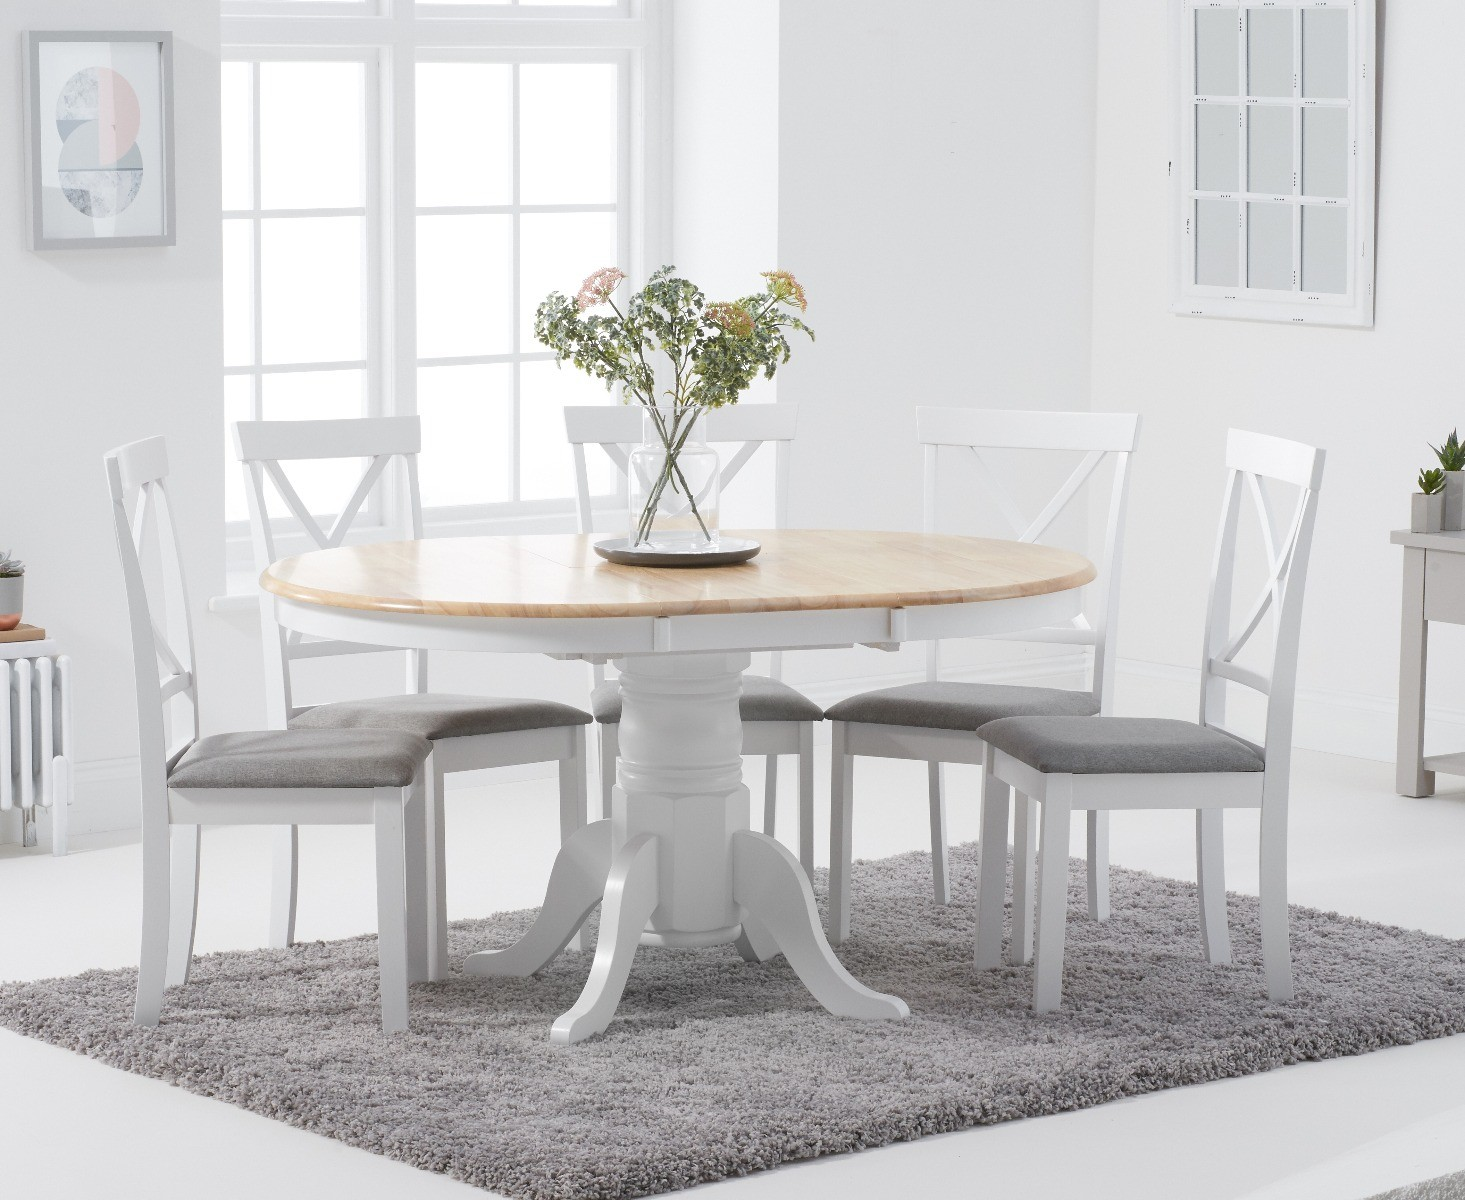 Epsom Oak and White Round Pedestal Extending Table with Epsom Chairs with  Grey Fabric Seats